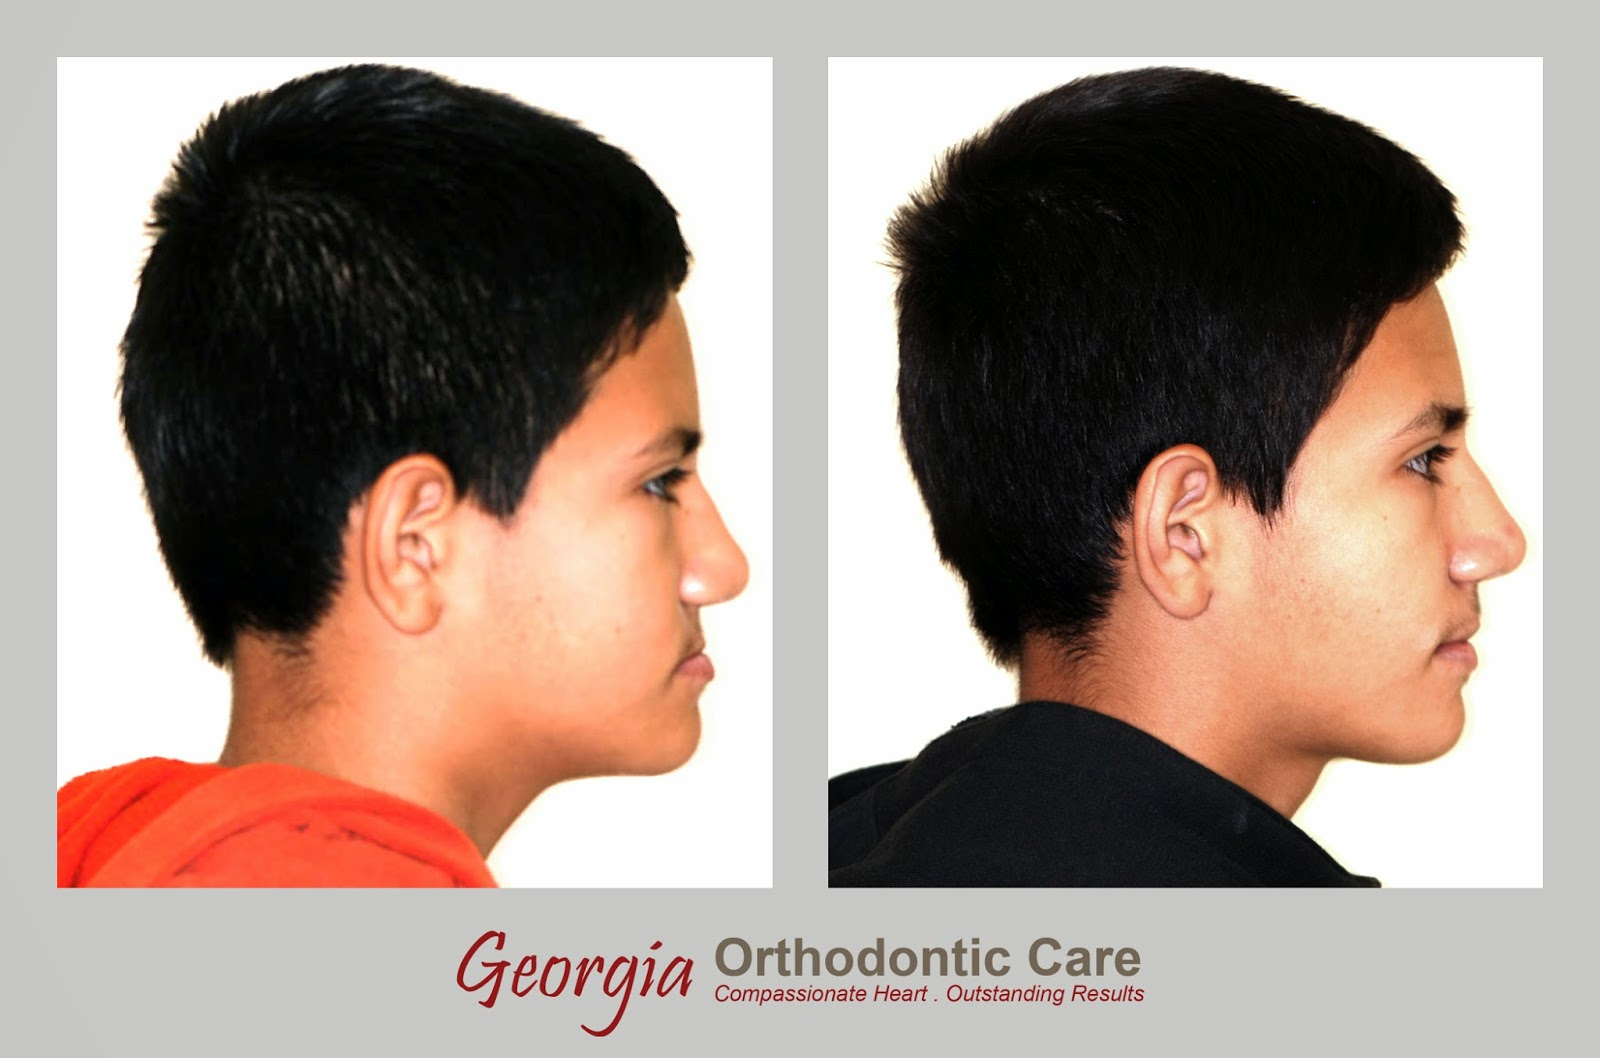 Facial profile, Under bite treatment, class III treatment, Lawrenceville orthodontist, Norcross orthodontist, Gwinnett orthodontist, orthodontists, orthodontics, under bite, over bite, Georgia Orthodontic Care, Dr Nguyen, Cosmetic, Implant, Children, Family, Dentists, Clear, Braces, Invisible, Adults, Teens, Children, Clear Braces, Invisible Braces, Invisalign, Straighten, Teeth, Lawrenceville, Norcross, Buford, Hamilton Mill, Dacula, Auburn, Sugar Hill, Sugar Loaf, Doraville, Chamblee, Stone Mountain, Decatur, Collins Hill, Snellville, Suwanee, Grayson, Lilburn, Duluth, Cumming, Alpharetta, Marietta, Dekalb County, Gwinnett County, Atlanta, North Georgia, GA, Georgia, 30043, 30093